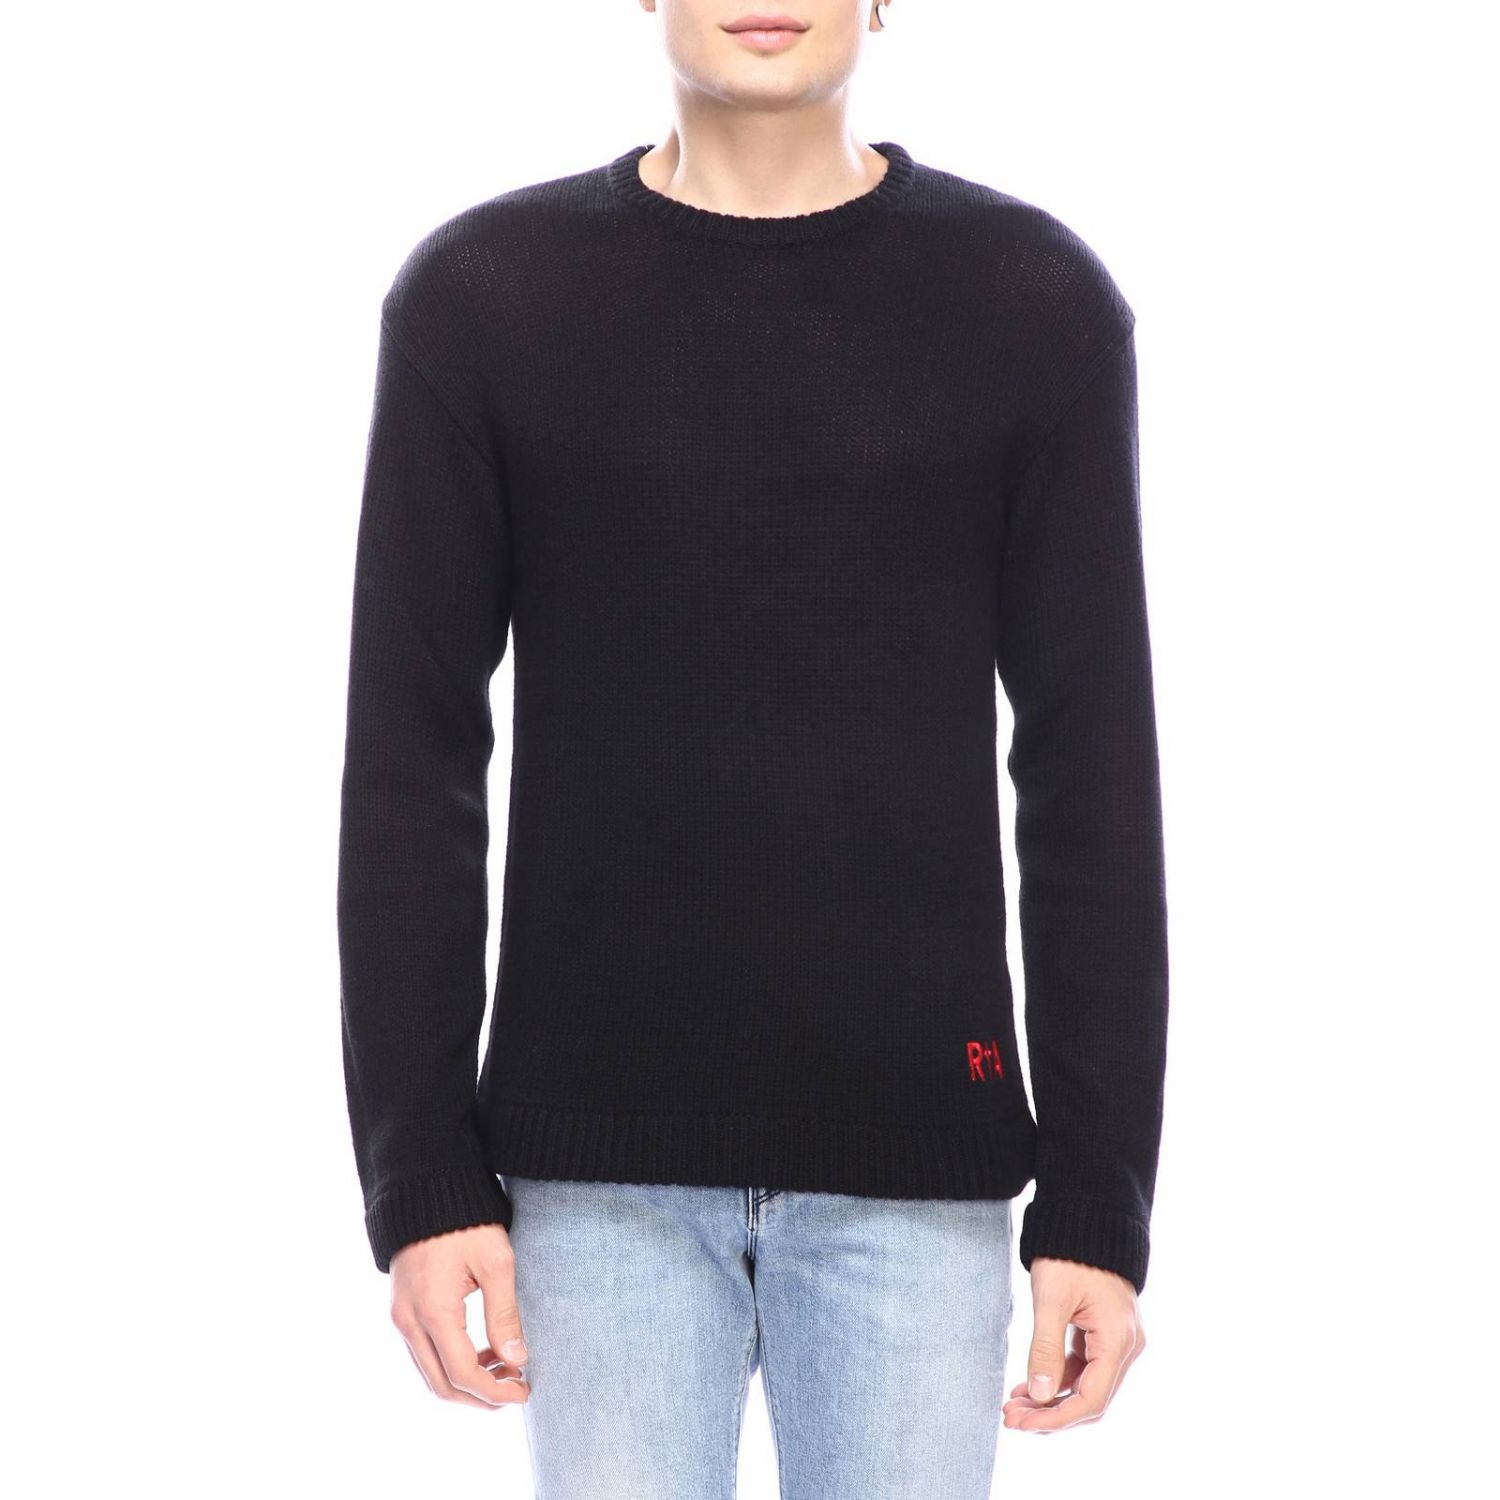 Sweater men Rta black 1